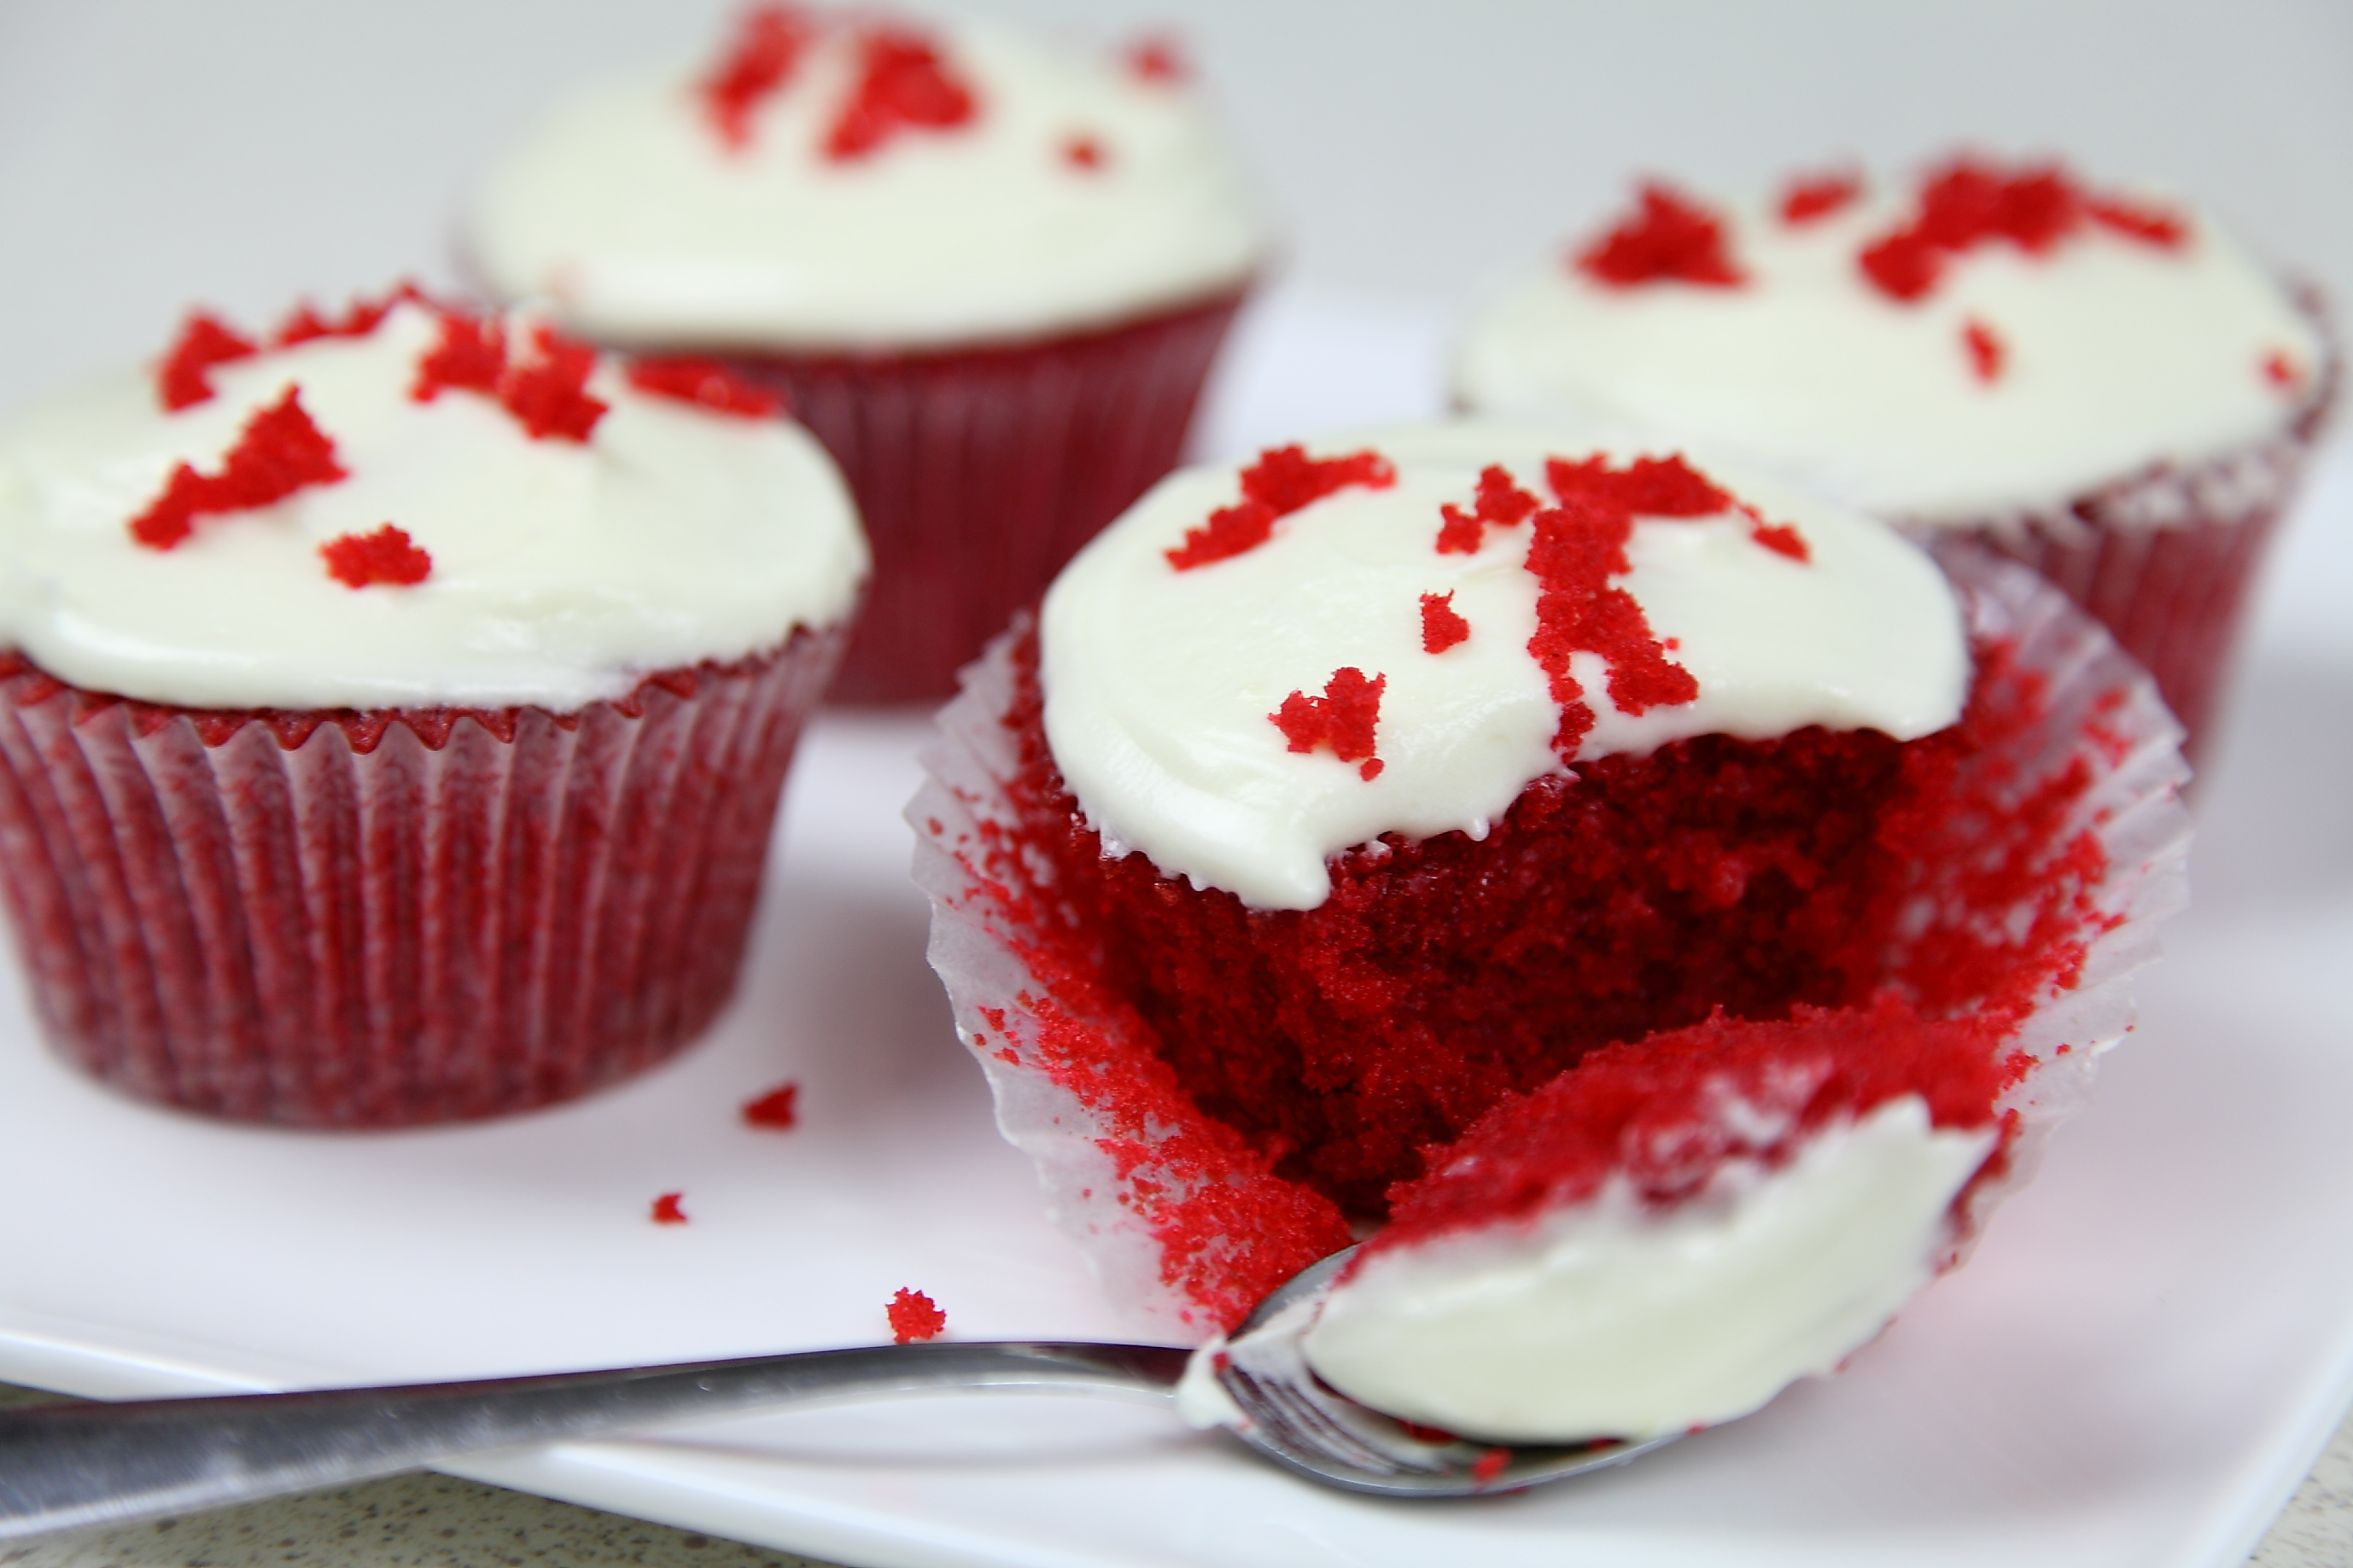 Red Velvet Cupcakes with Lemon Cream Cheese Frosting - Cake Style